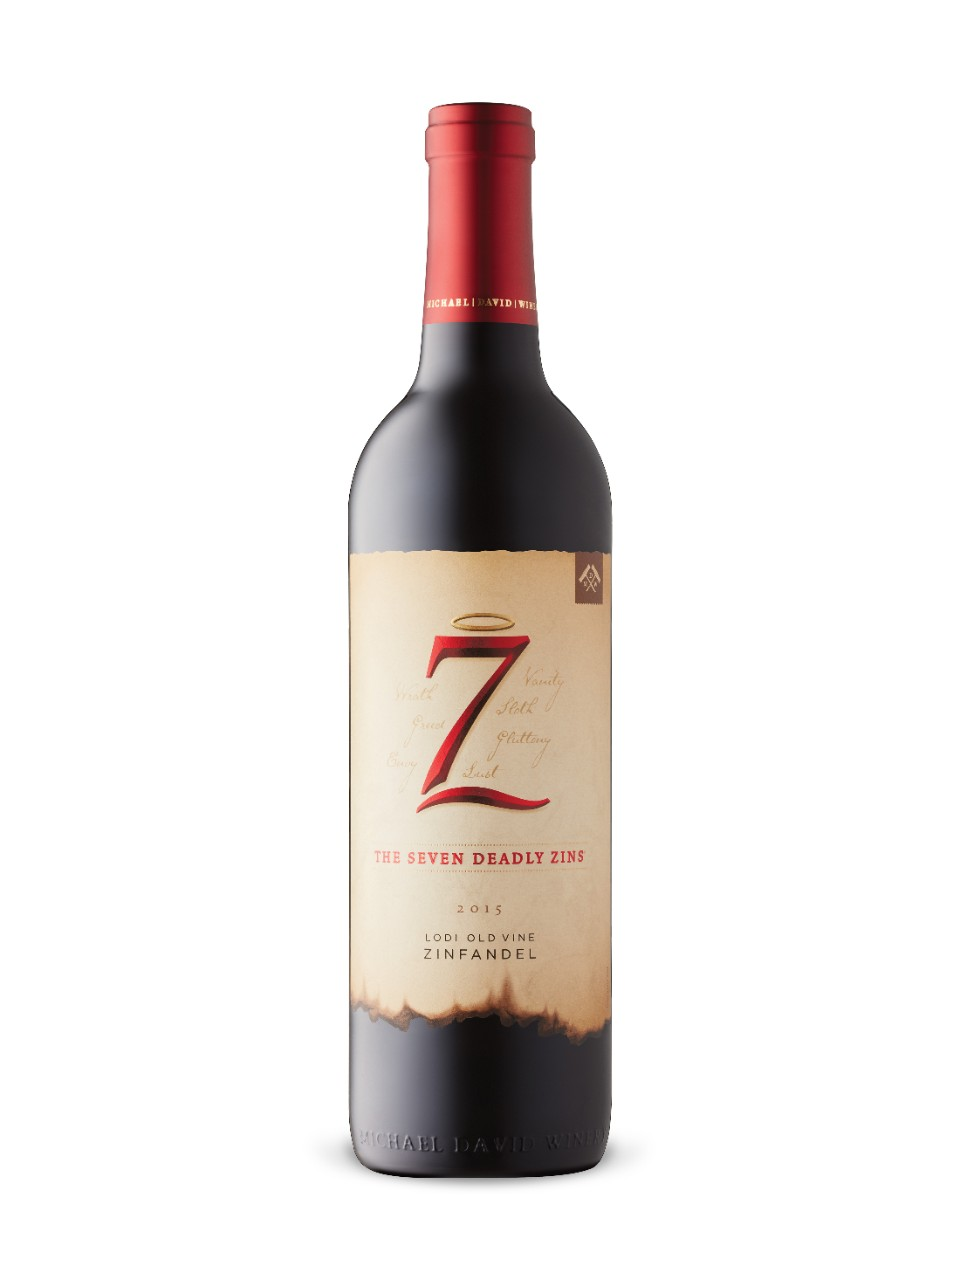 Zinfandel Vieilles vignes 7 Deadly Zins Michael David